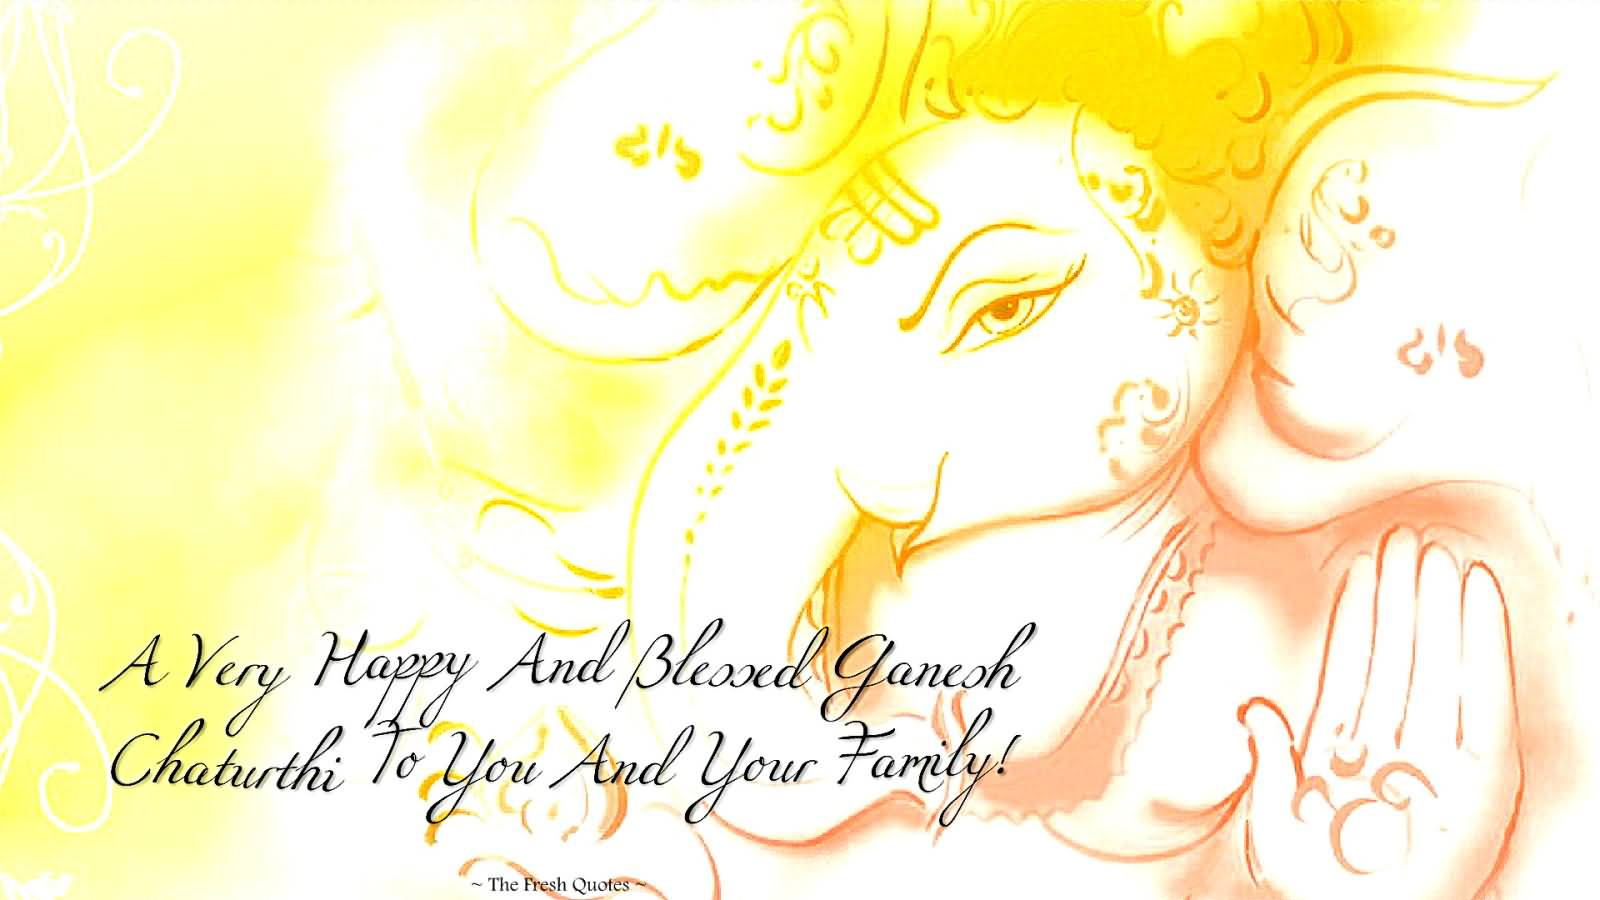 A Very Happy And Blessed Ganesh Chaturthi To You And Your Family